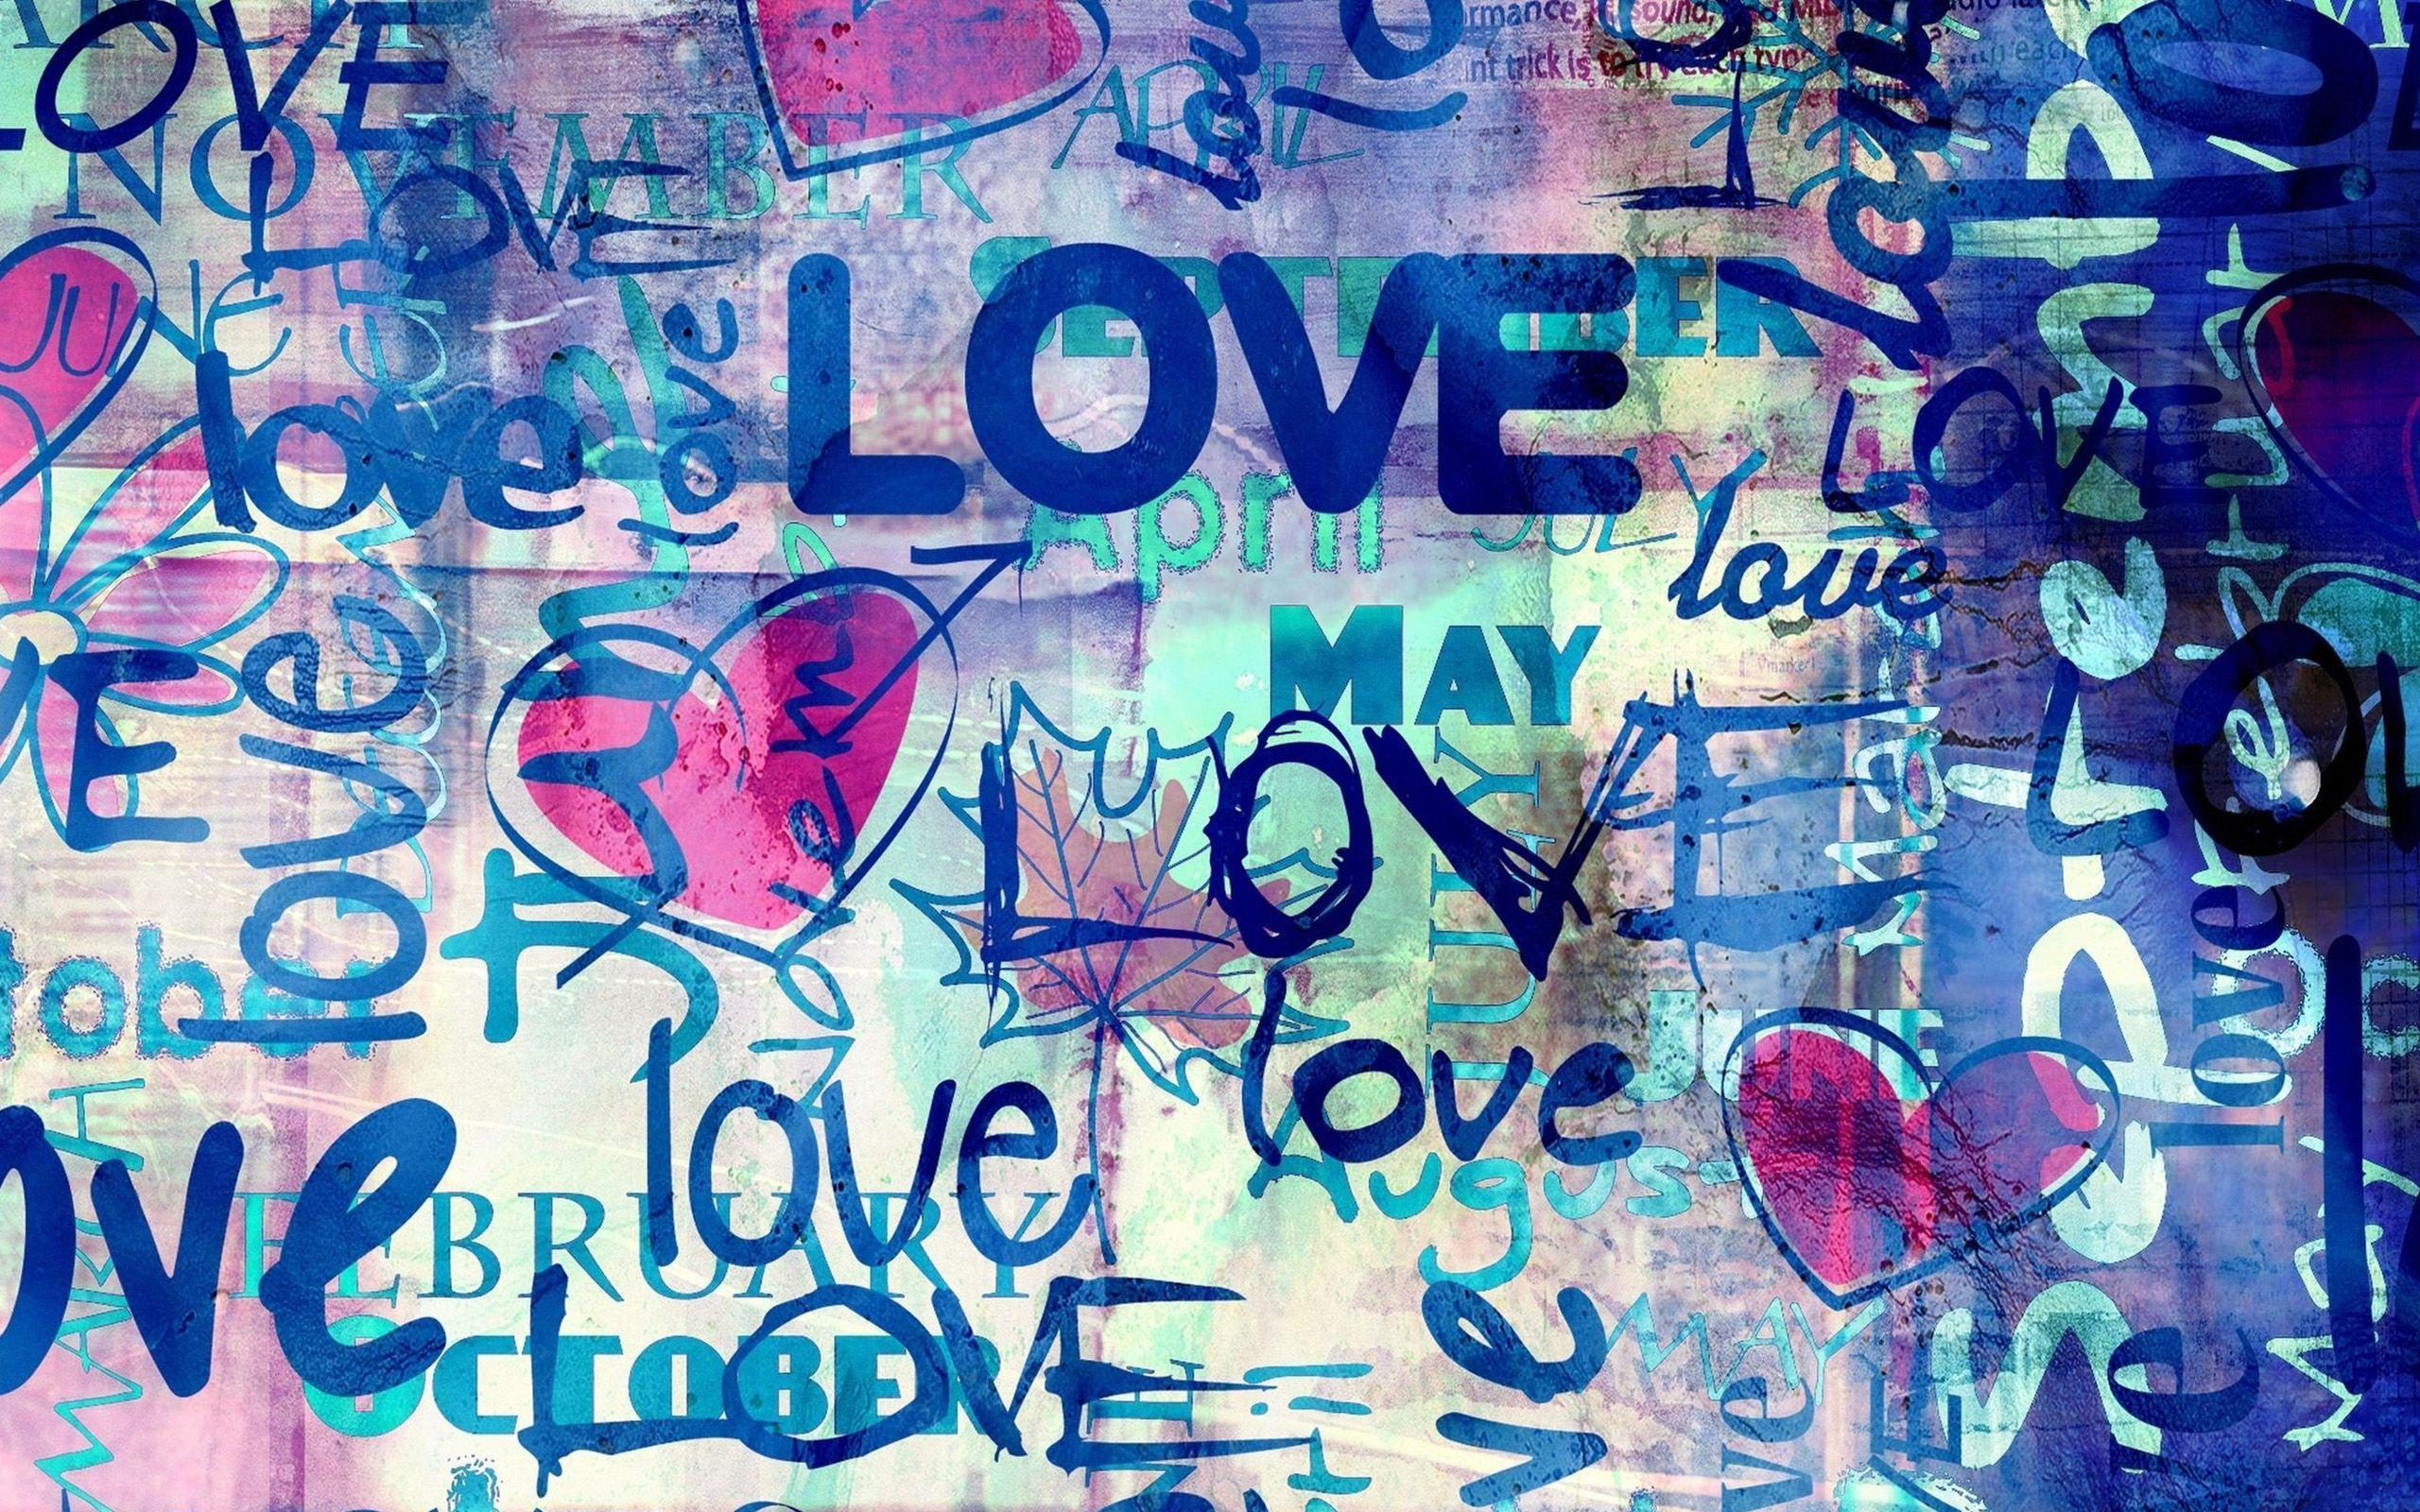 Download Free Graffiti Wallpaper Images For Laptop & Desktops